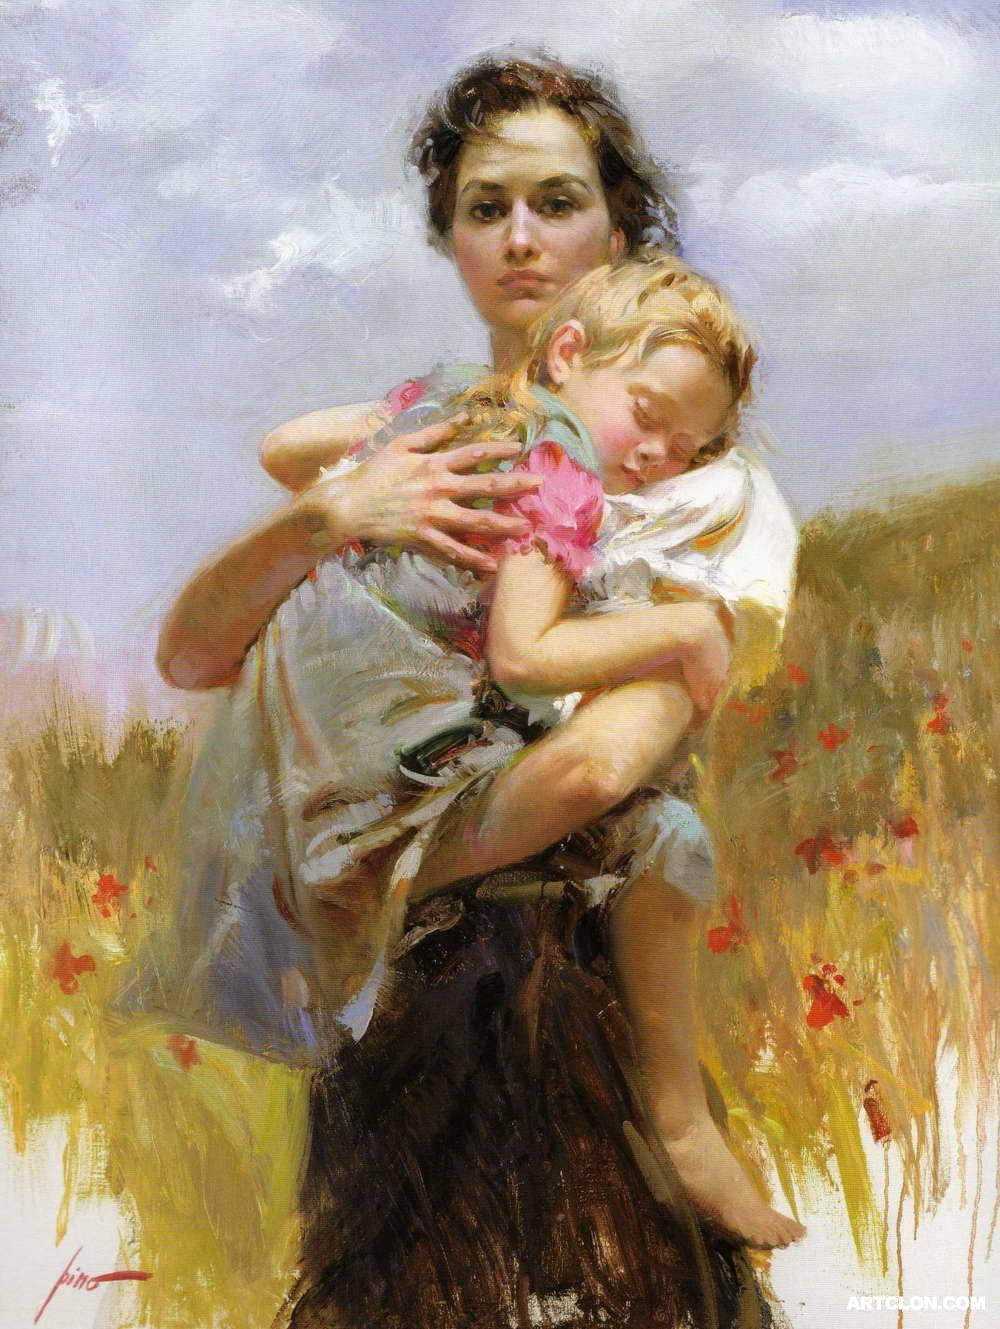 Image%20result%20for%20oil%20painting%20mother%20and%20baby